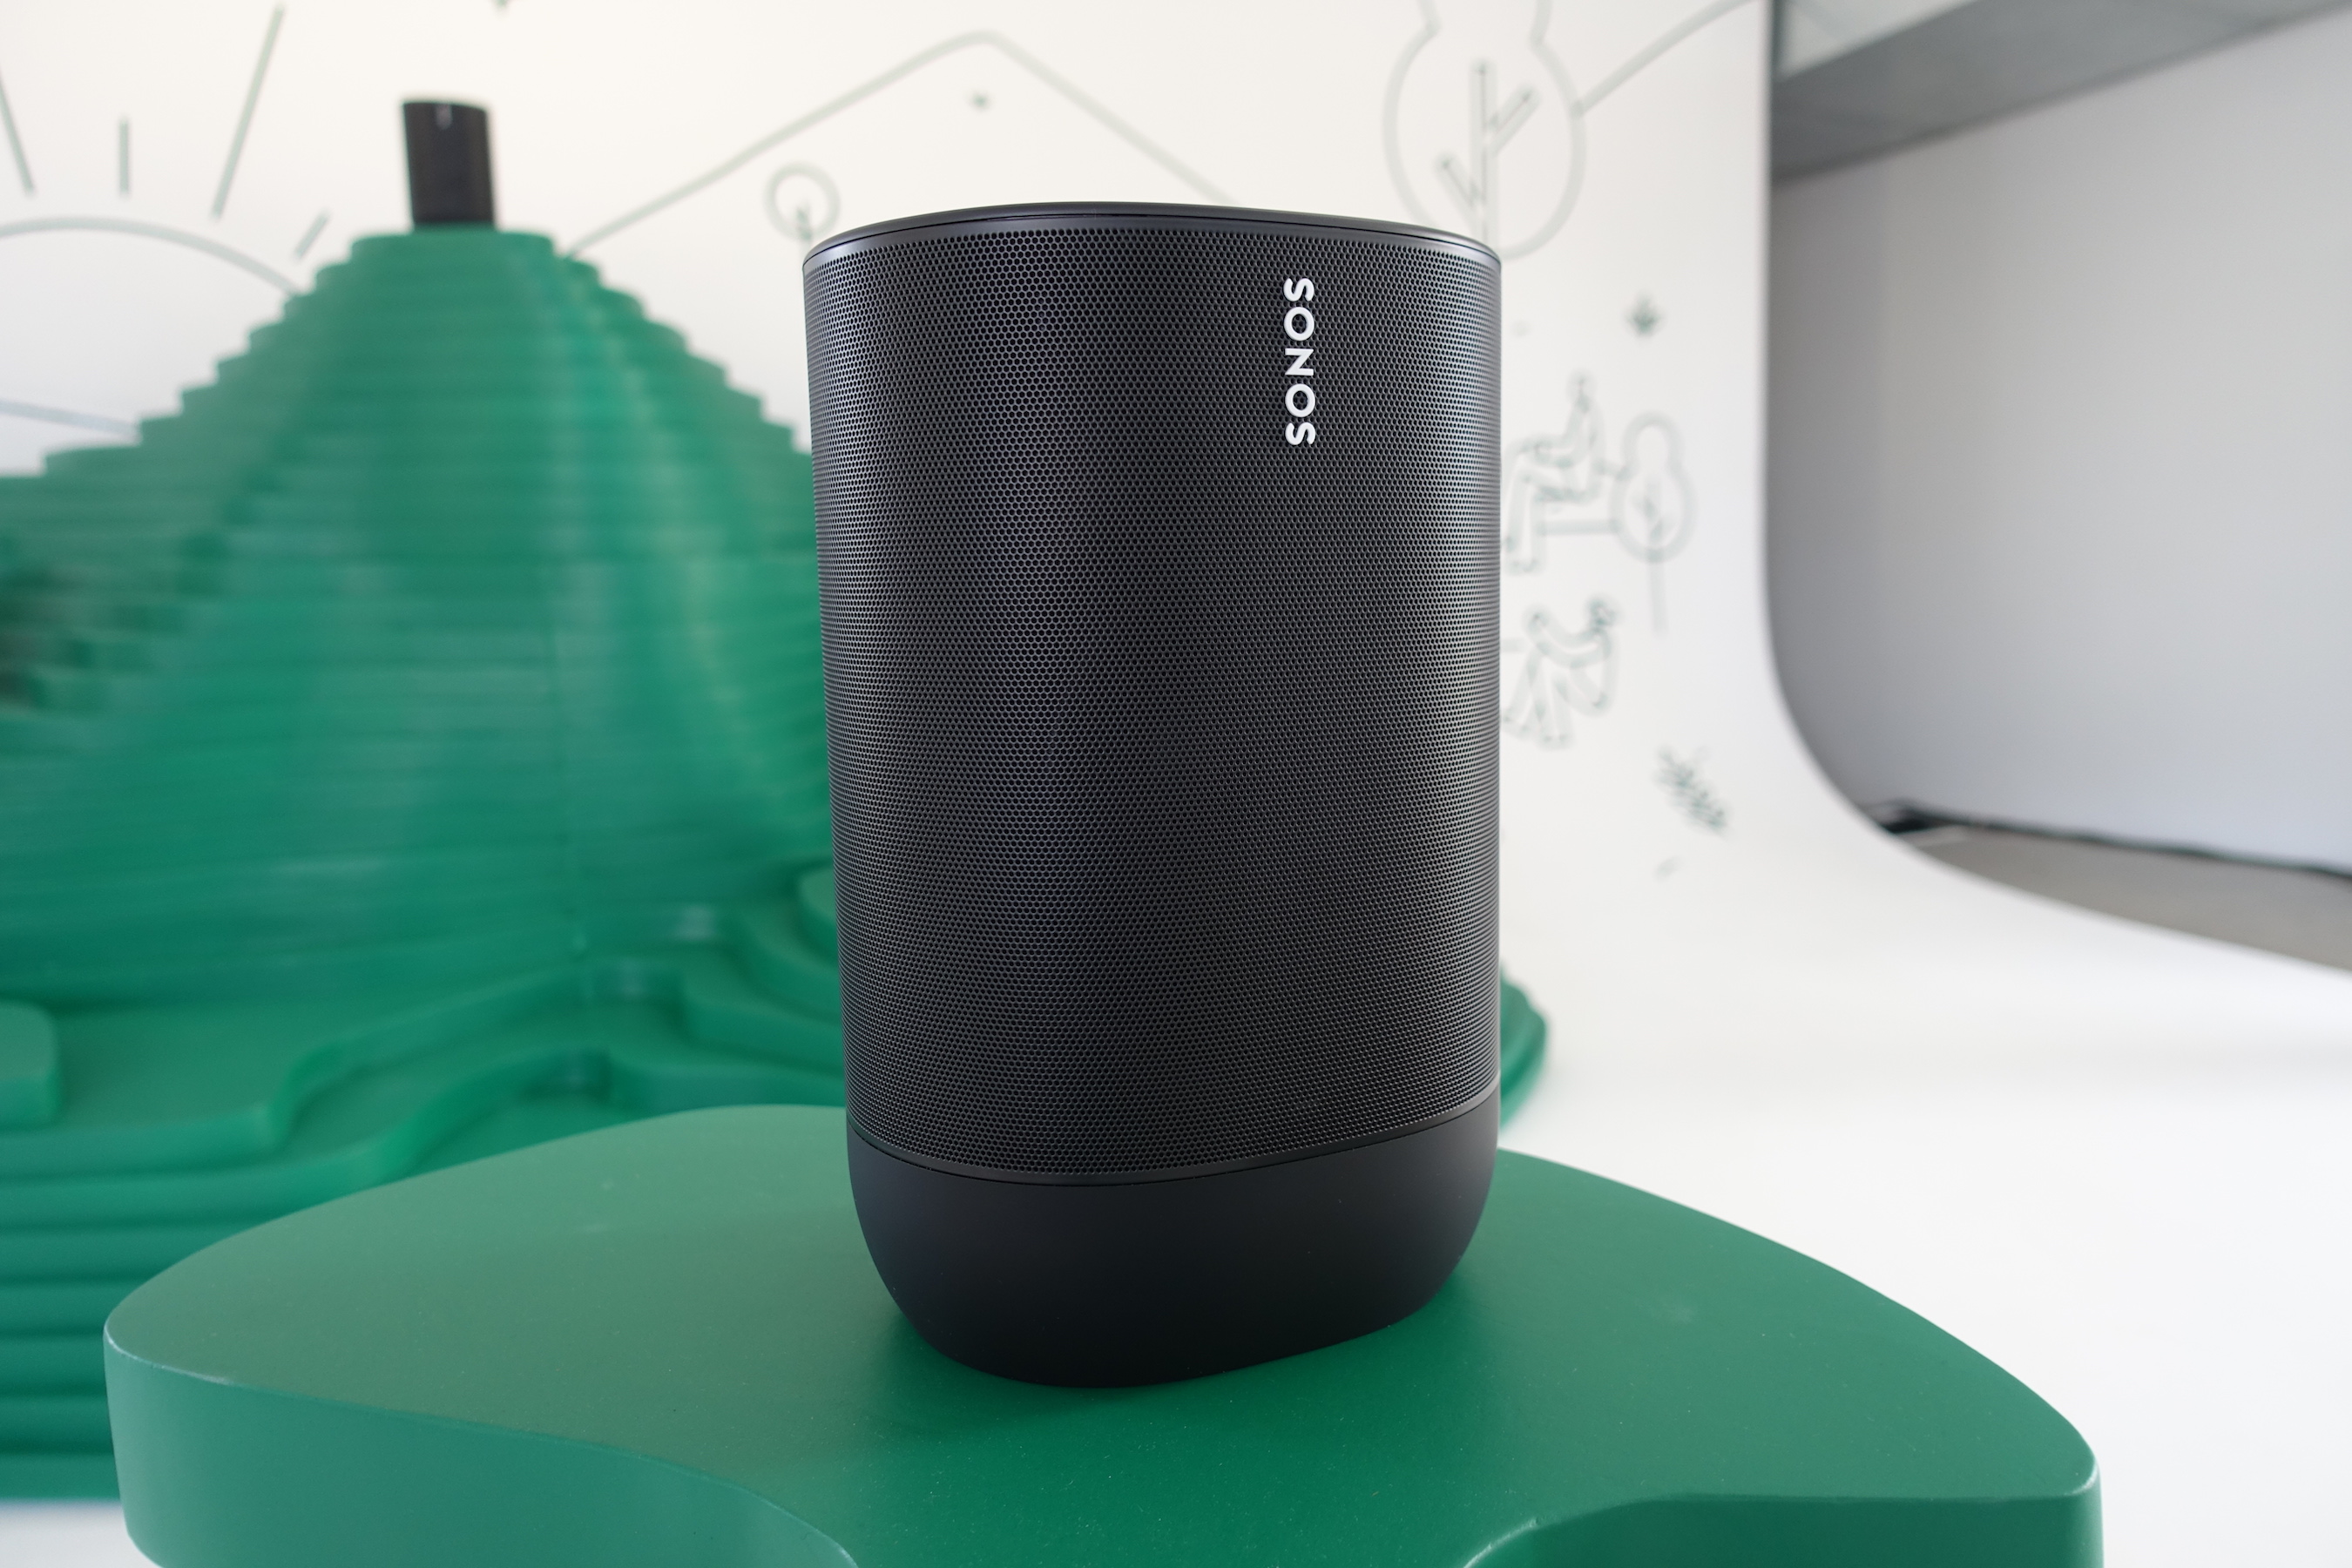 The Sonos Move offers excellent sound quality and works both over Wi-Fi and Bluetooth.